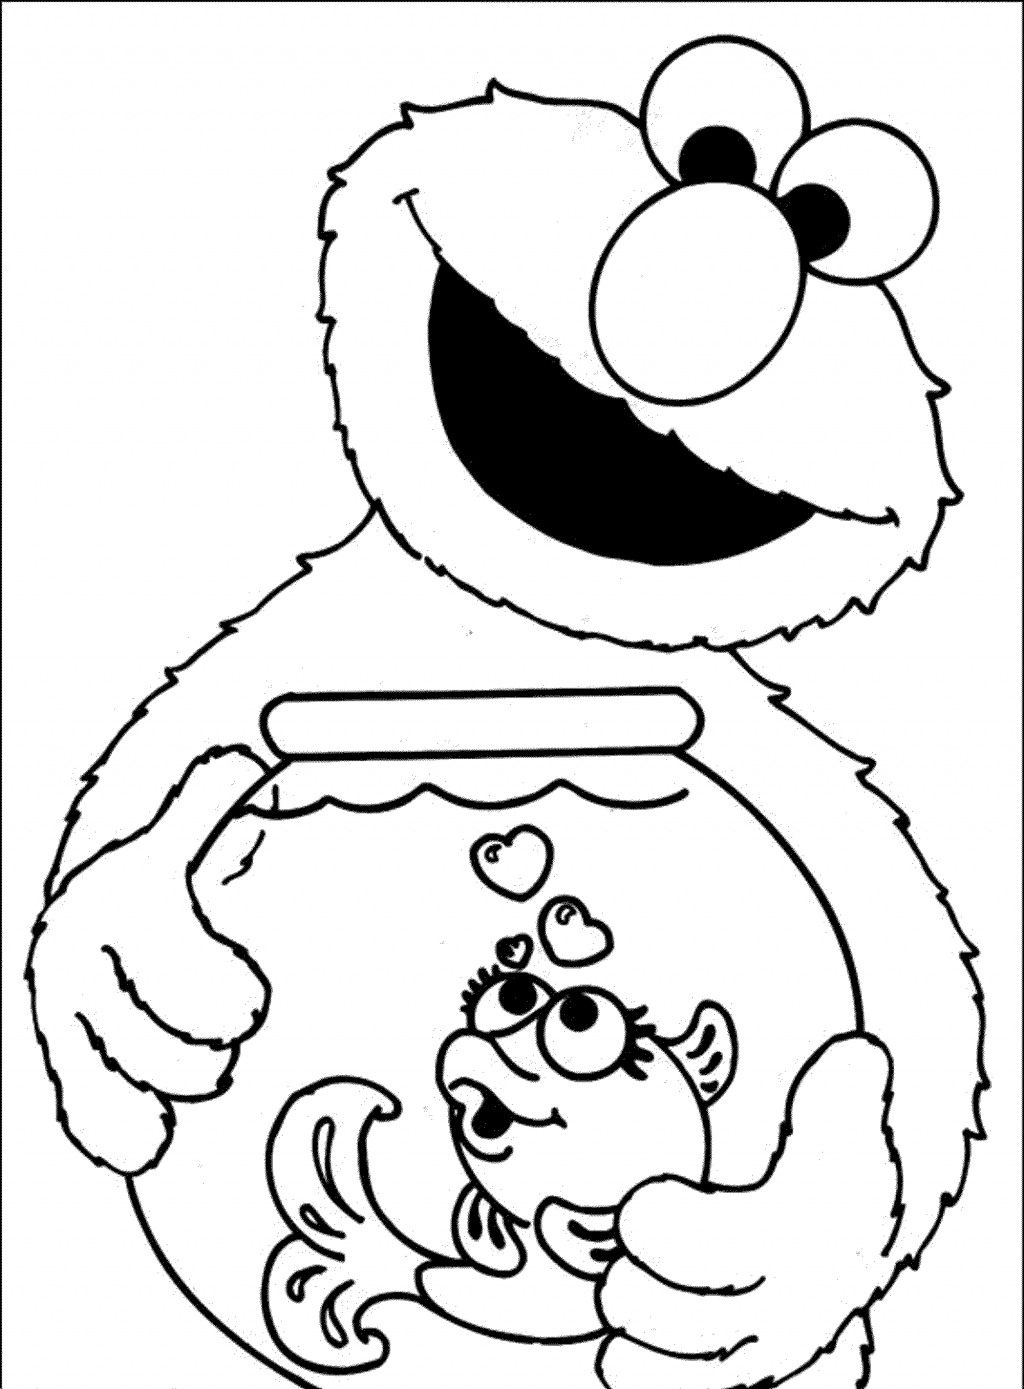 Coloring Pages ~ Coloring Pages Free Printable Best Of Printoad Elmo - Elmo Color Pages Free Printable